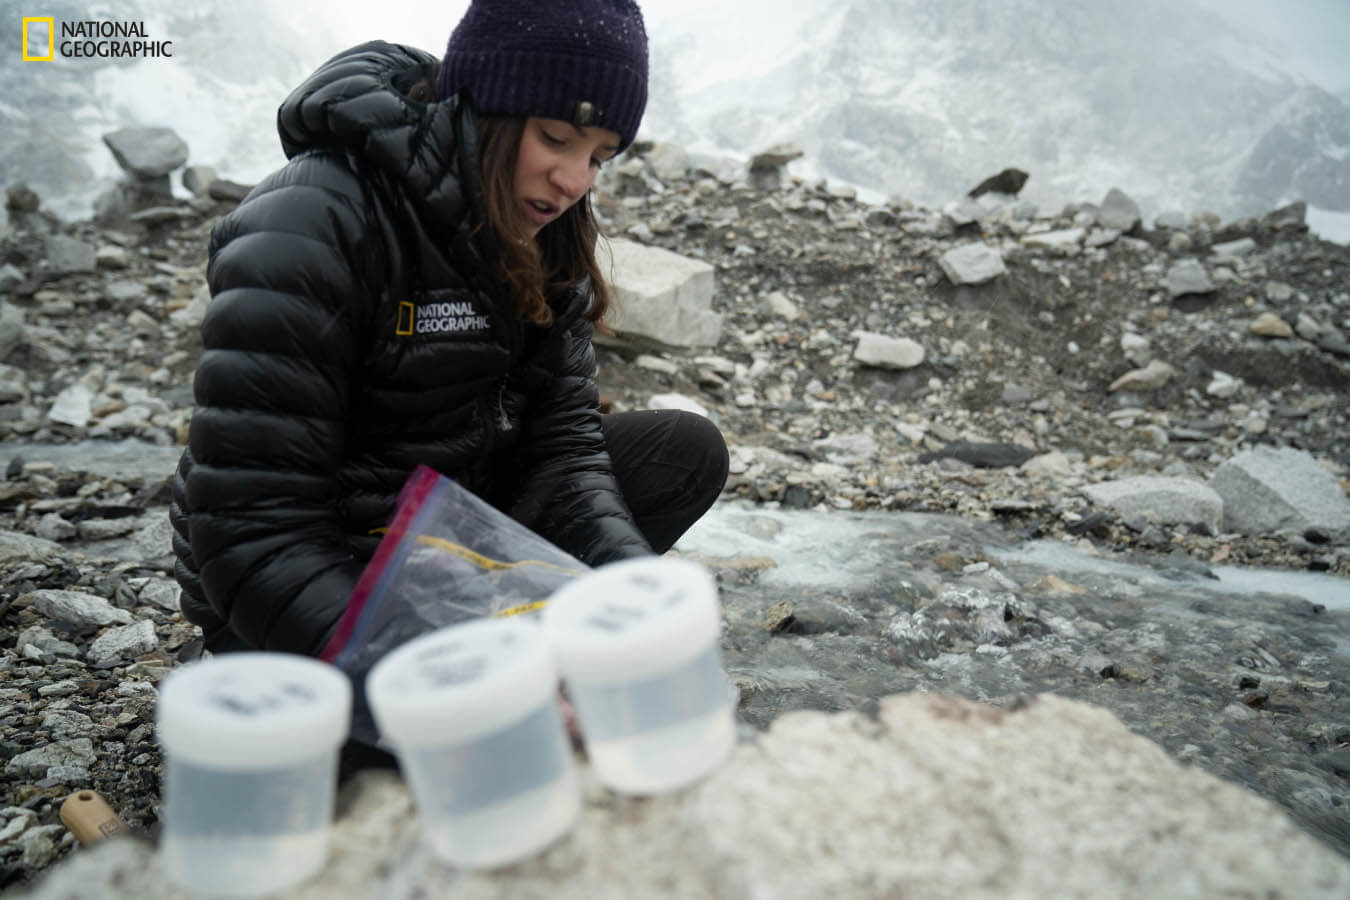 A woman collects samples near Mount Everest Base Camp.